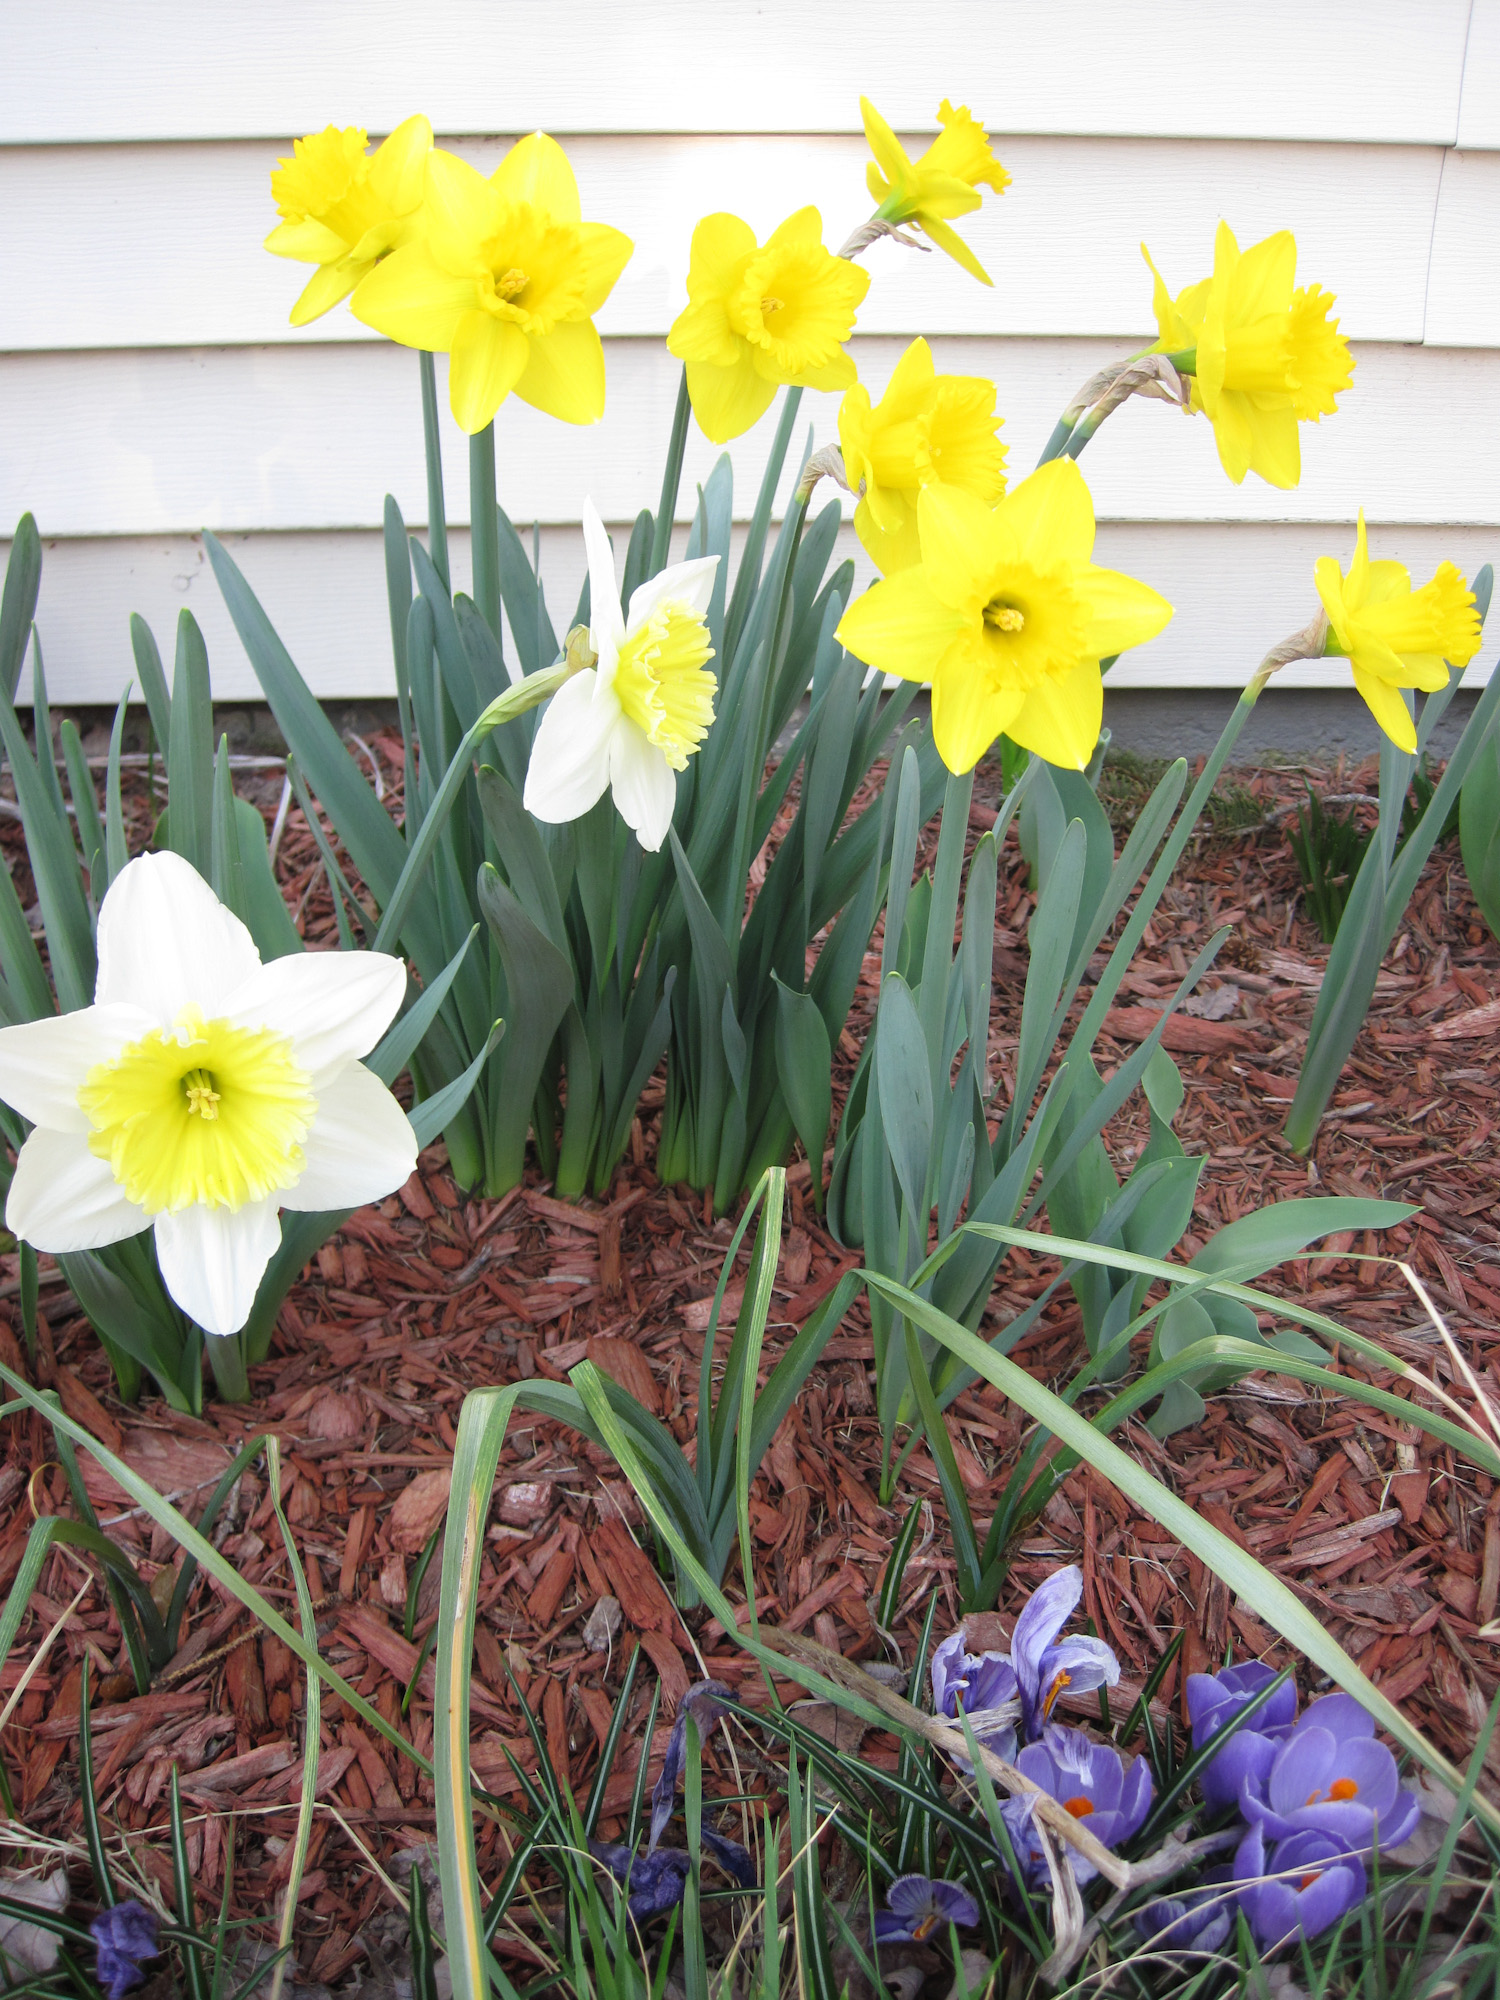 The daffodils and crocuses were out when I left, fooled by 80º+ weather